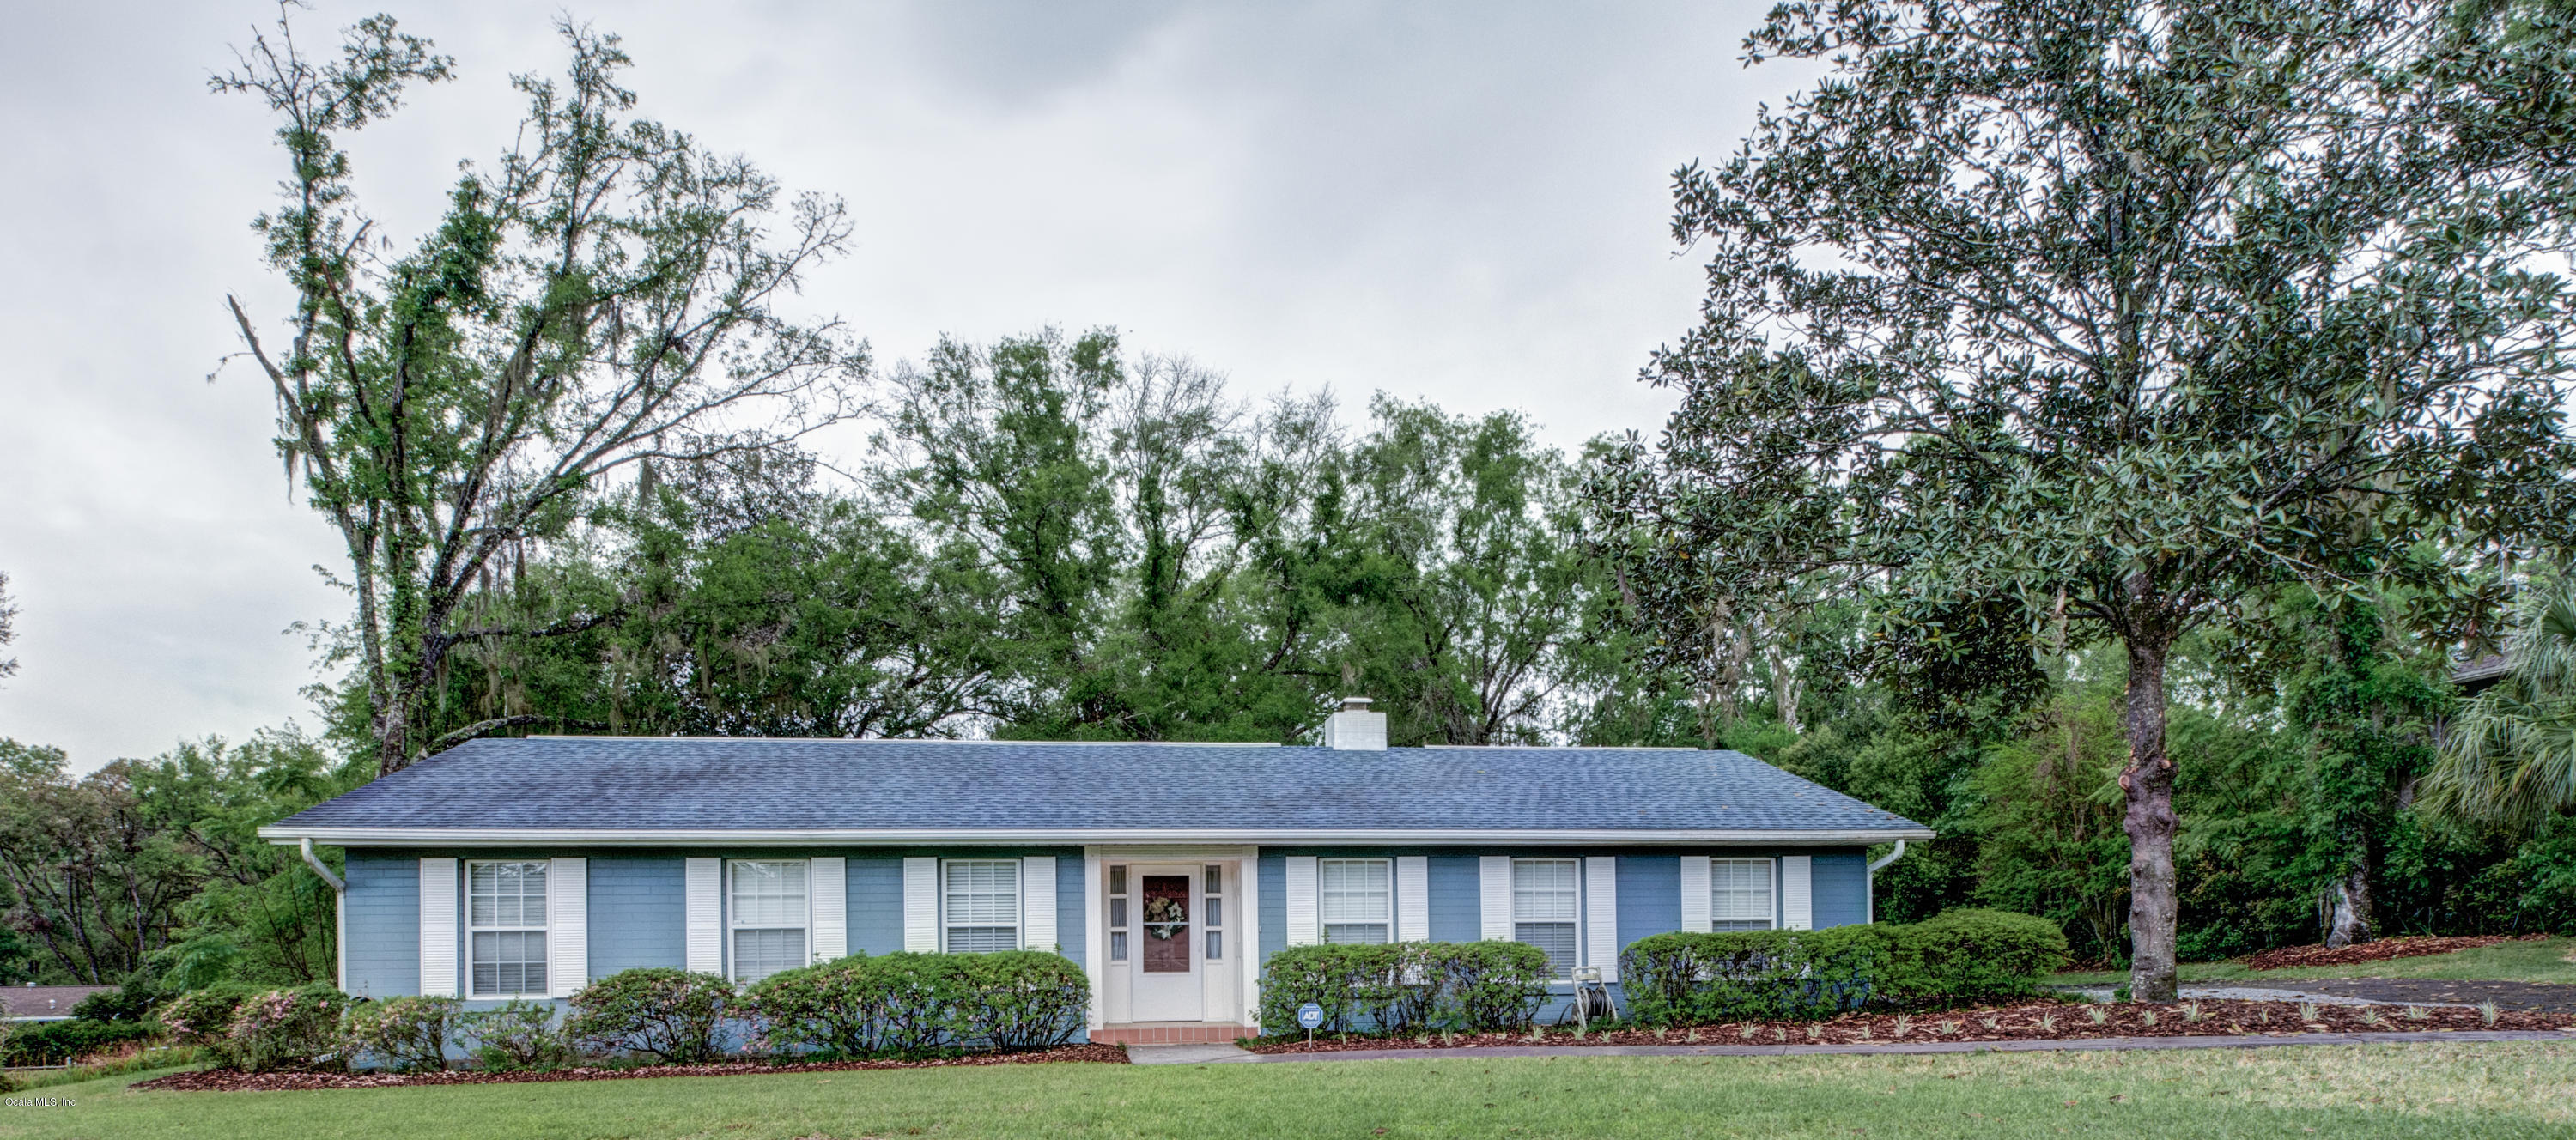 628 SE 18TH STREET, OCALA, FL 34471